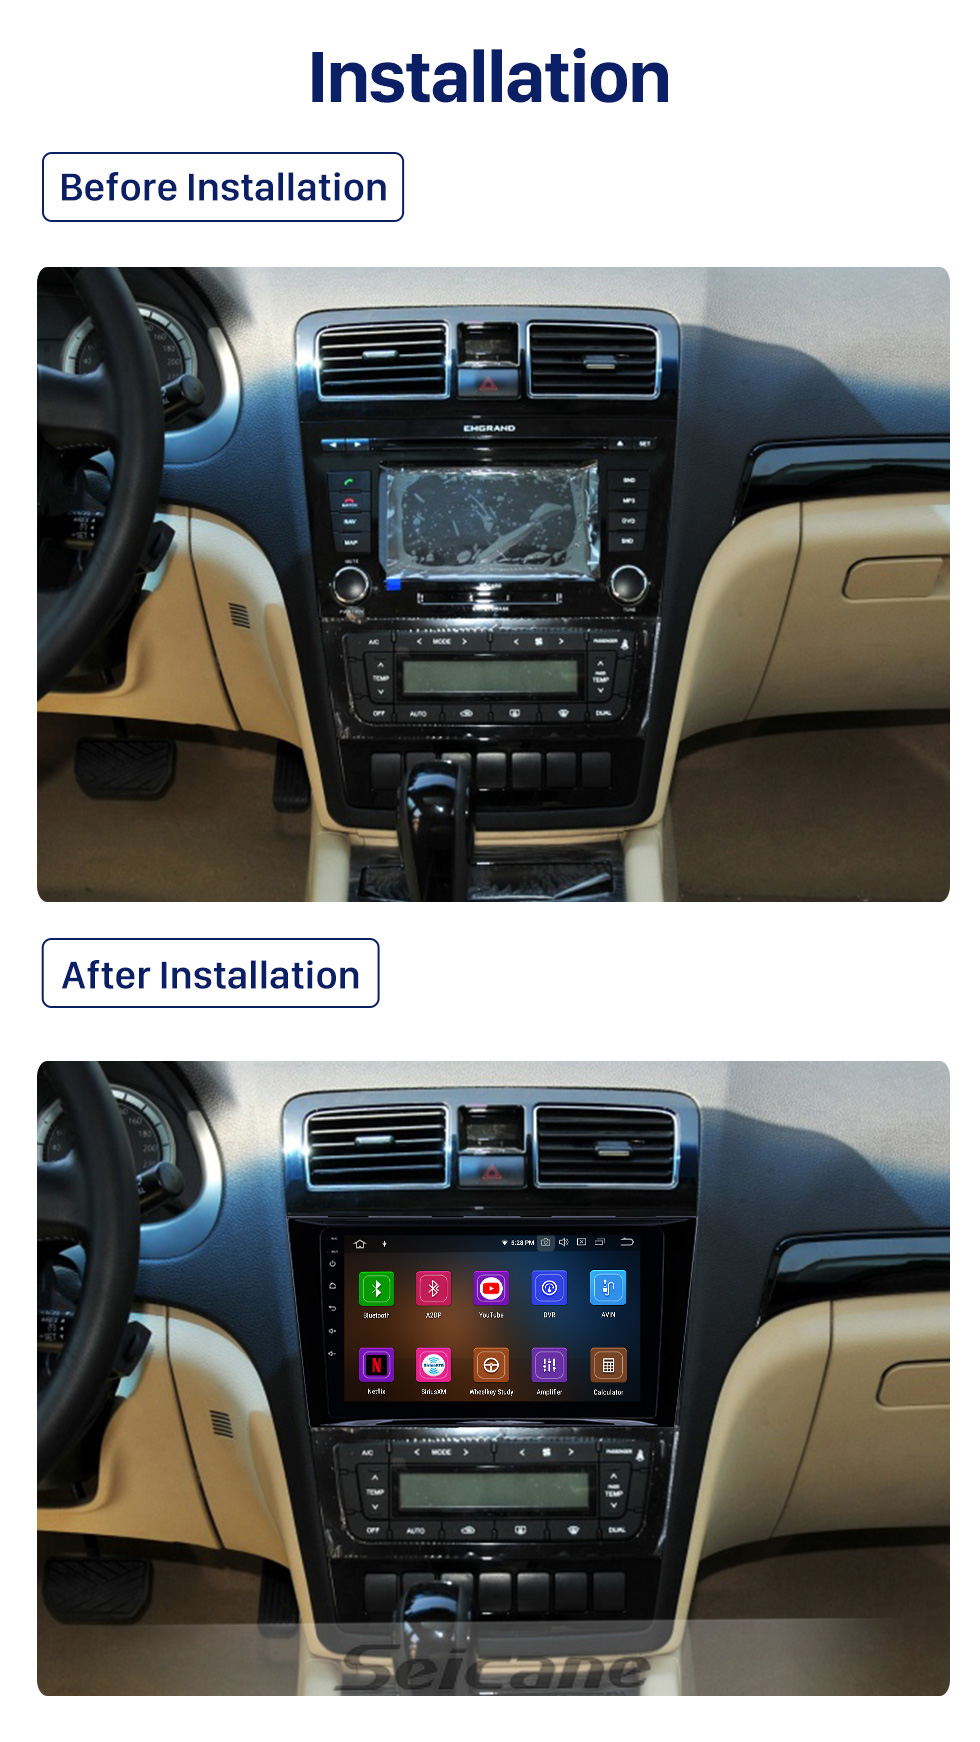 Seicane 2009-2015 Geely Emgrand EC8 Android 10.0 9 inch GPS Navigation Radio Bluetooth HD Touchscreen WIFI USB Carplay support Backup camera